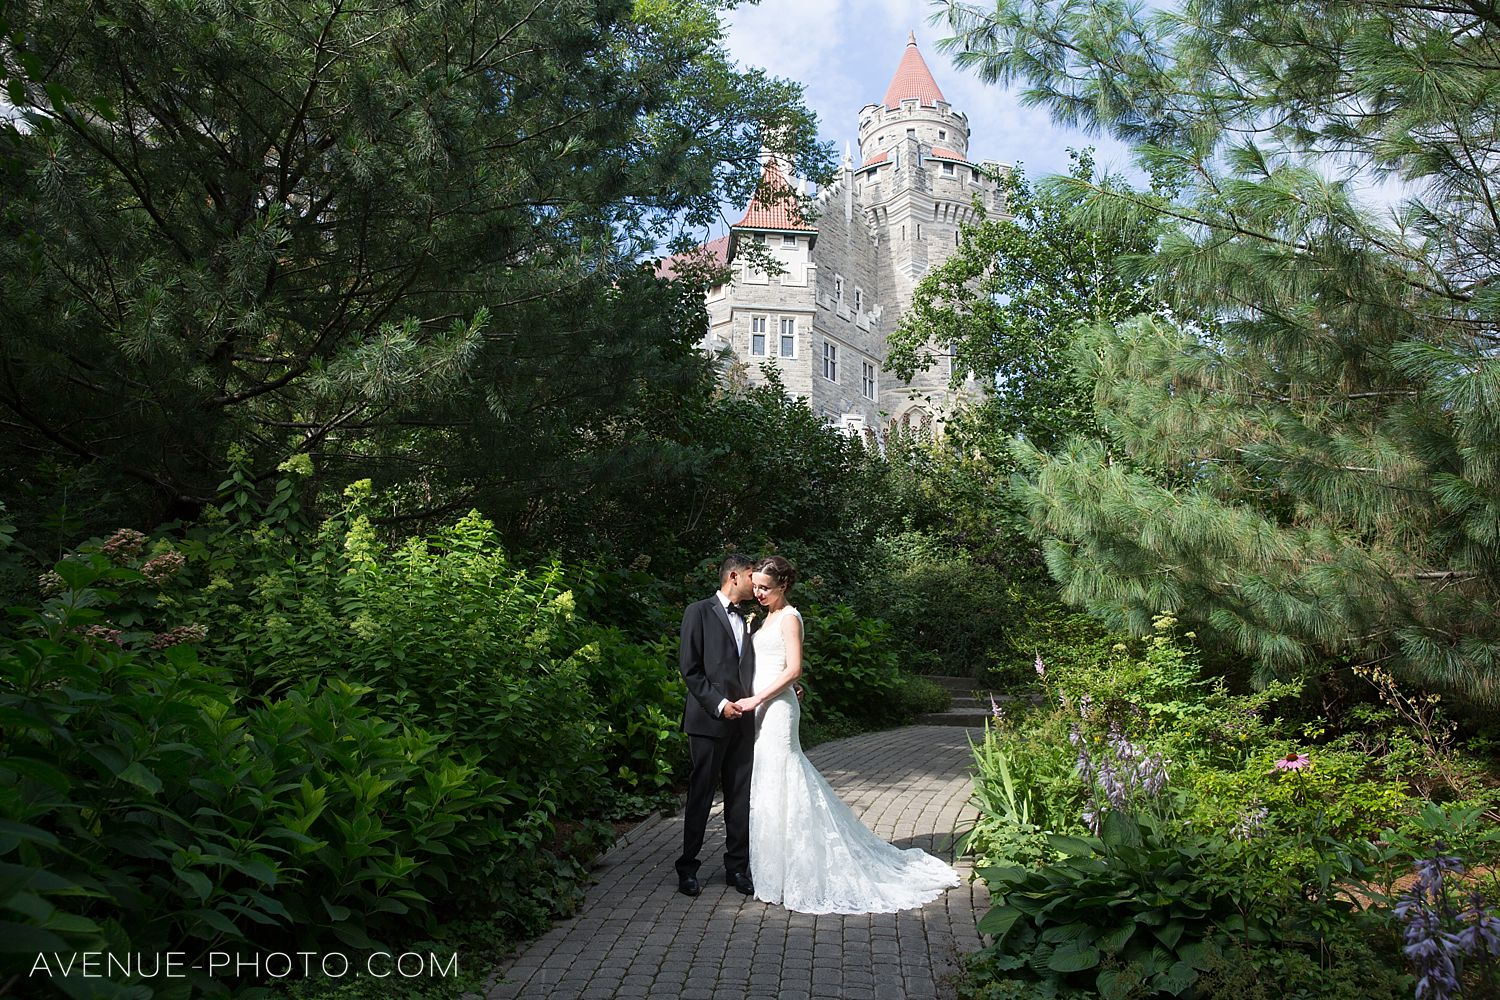 casa loma wedding photos, casa loma wedding, casa loma, wedding photos casa loma, toronto wedding photographer, james gardens weddding photos